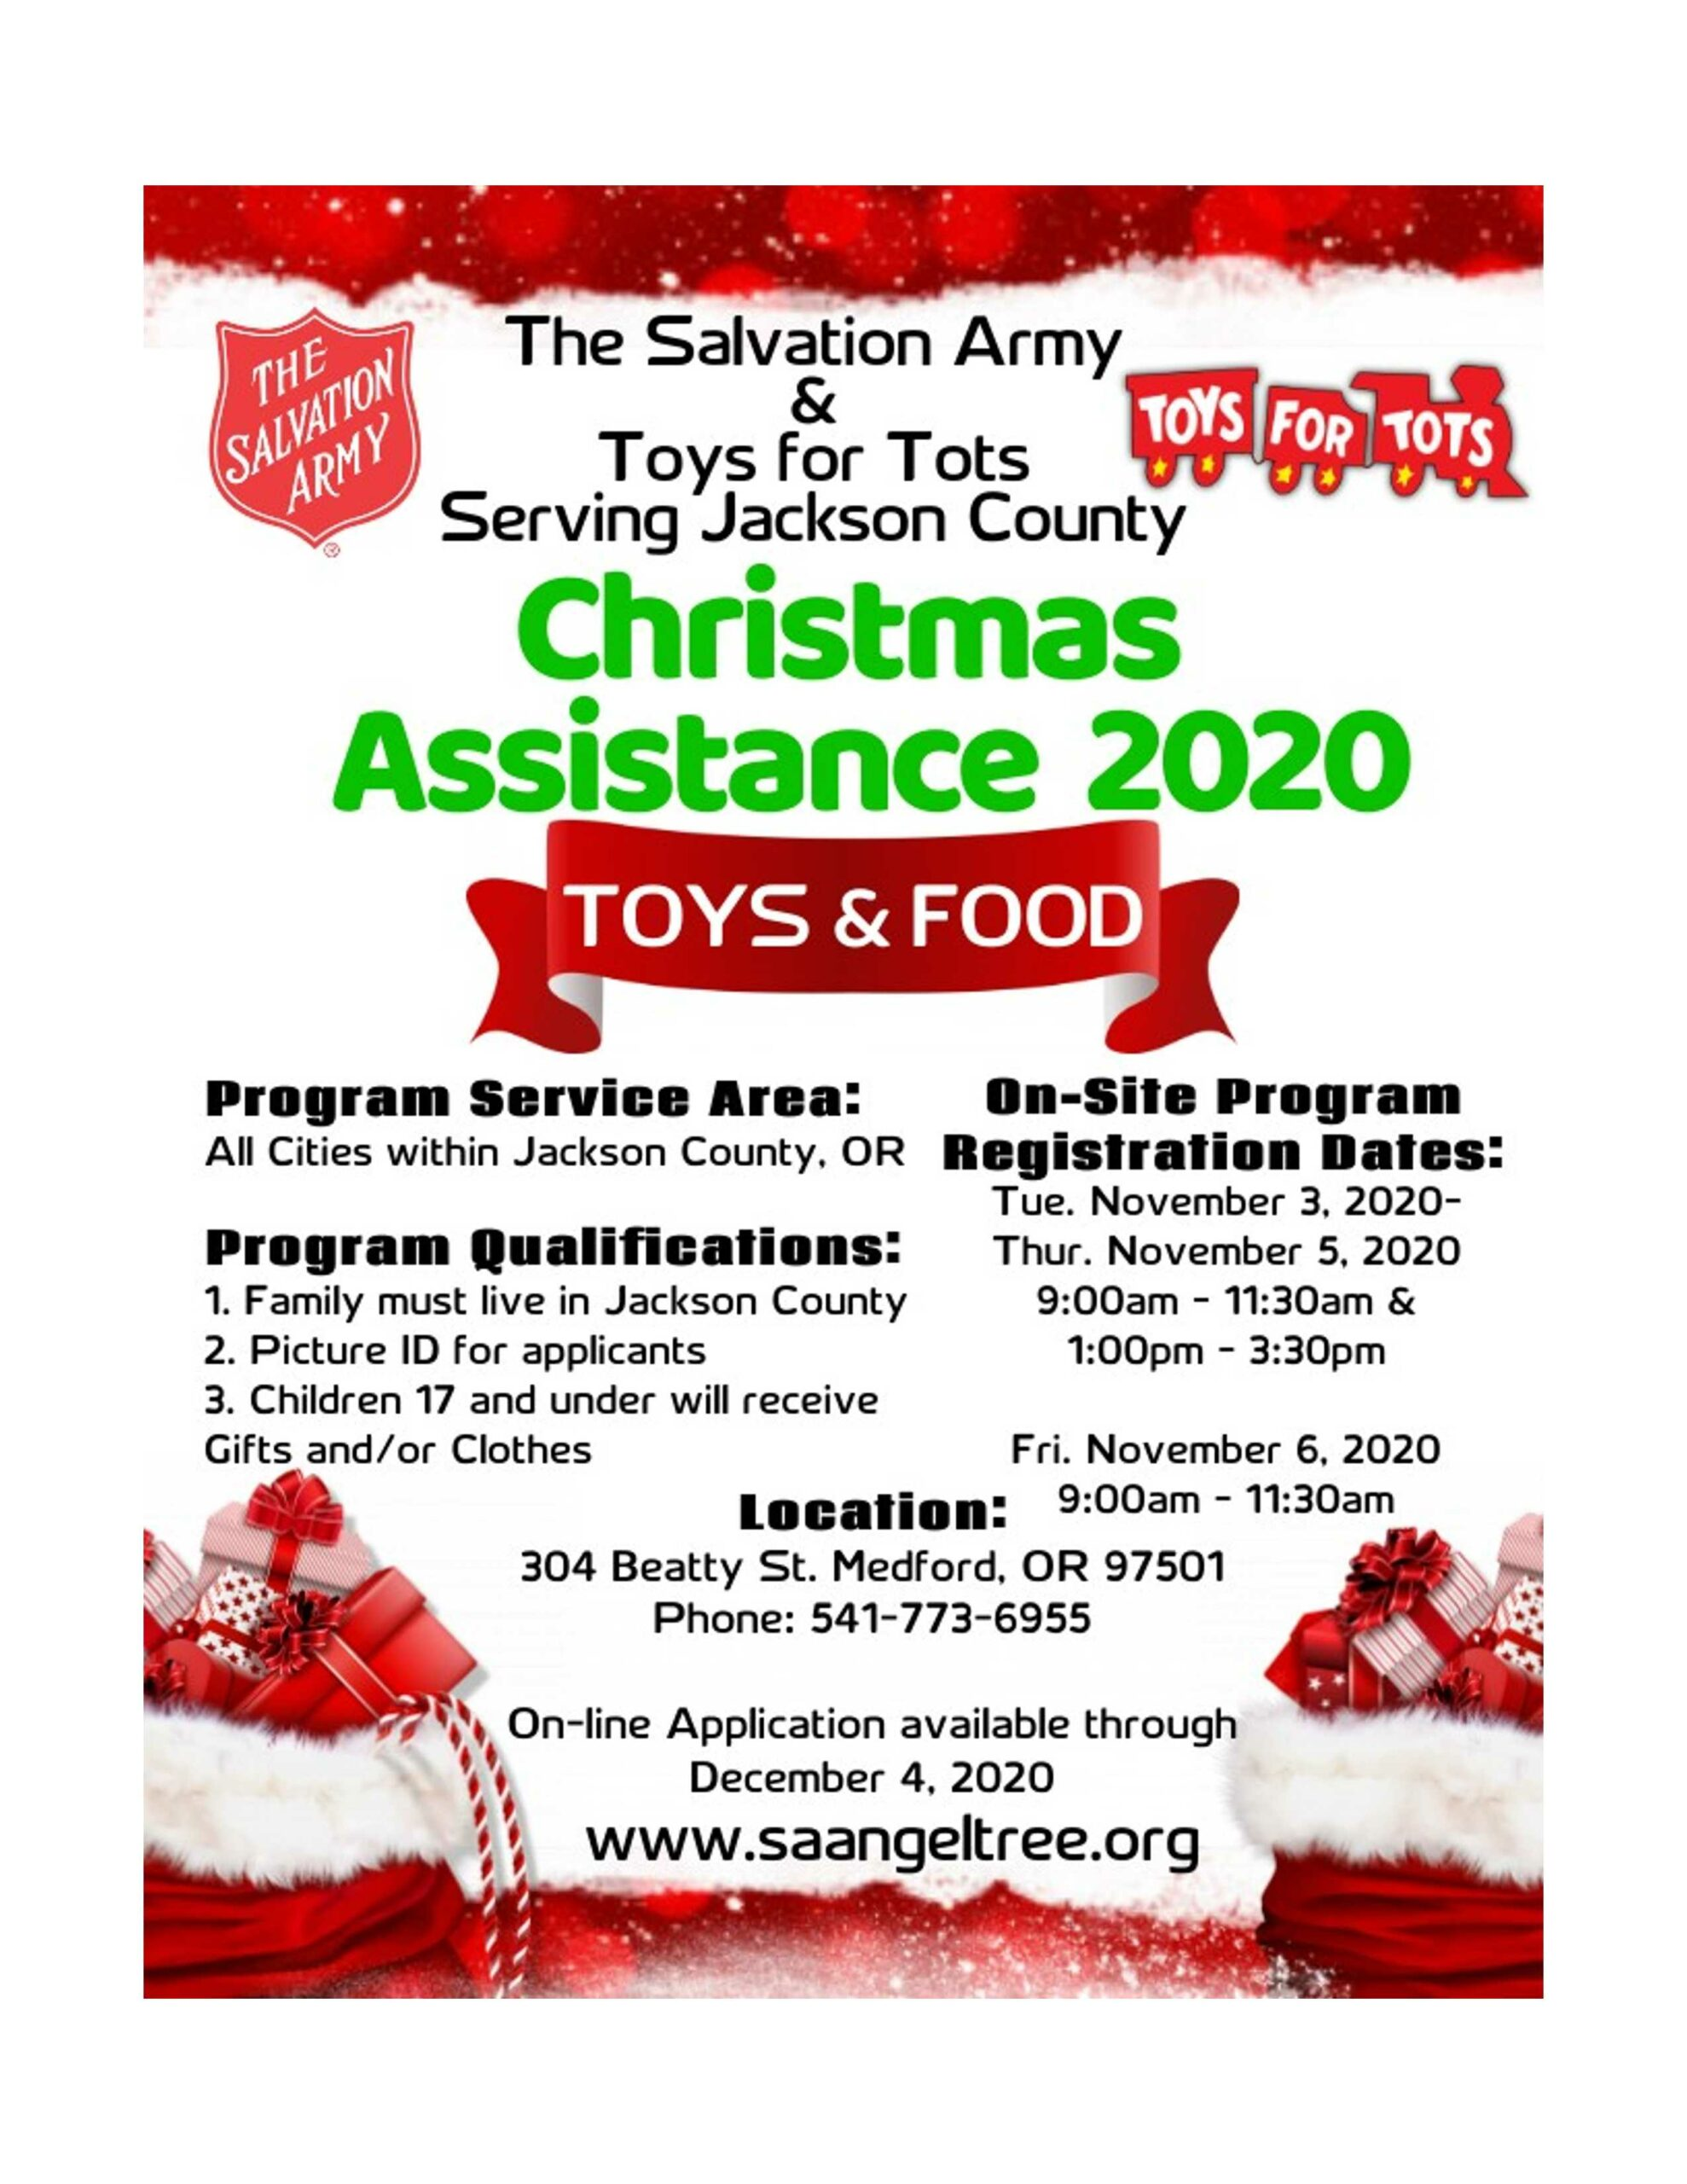 Christmas Flyer for Salvation Army. All Cities in Jackson County, at 304 Beatty St. in Medford